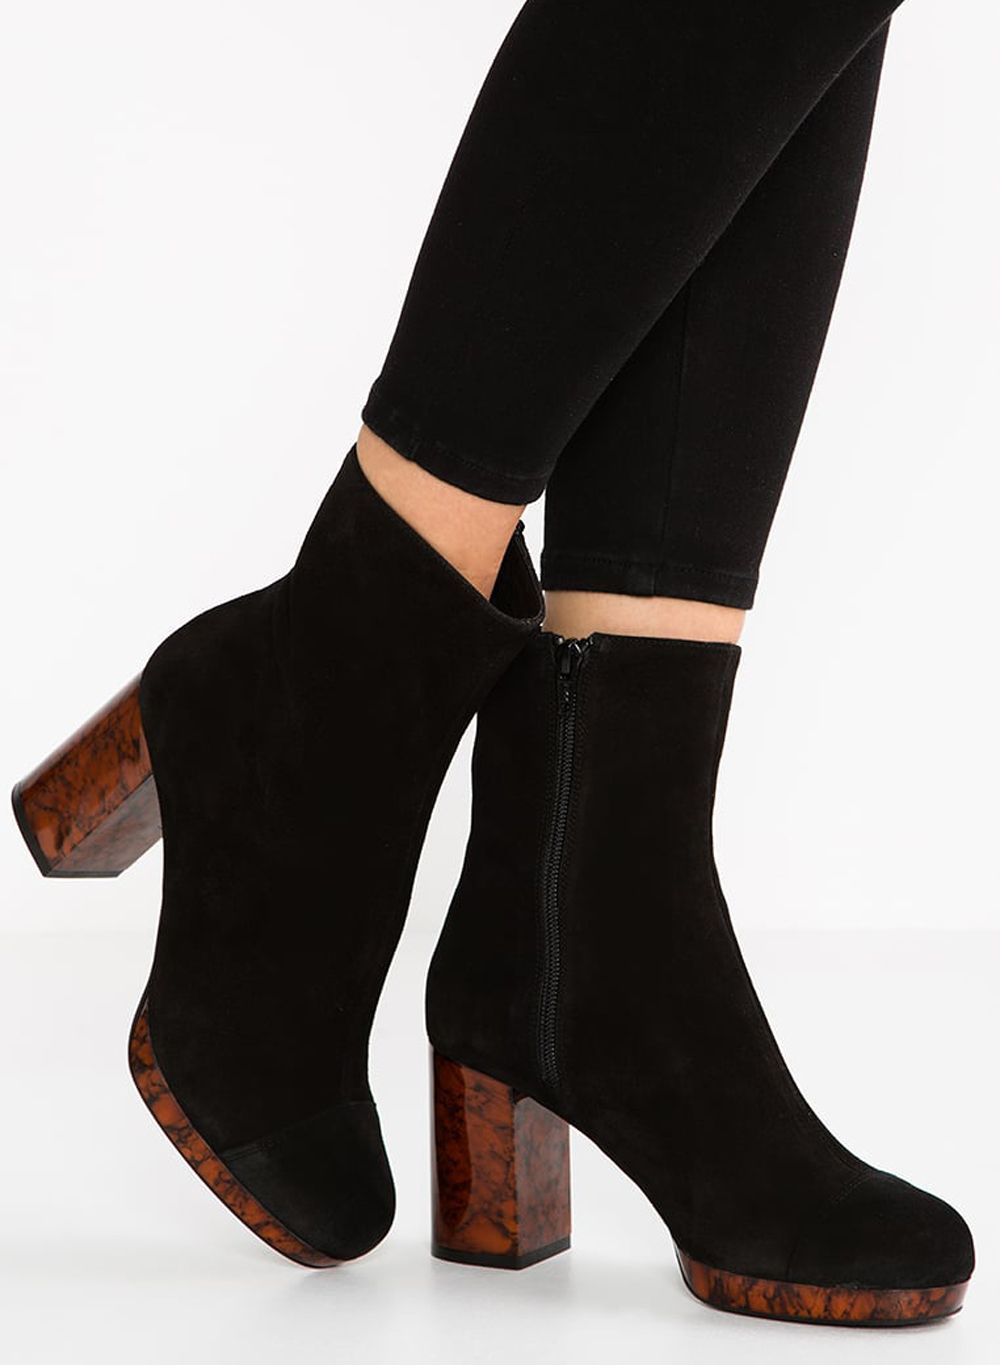 boots-free-people-2